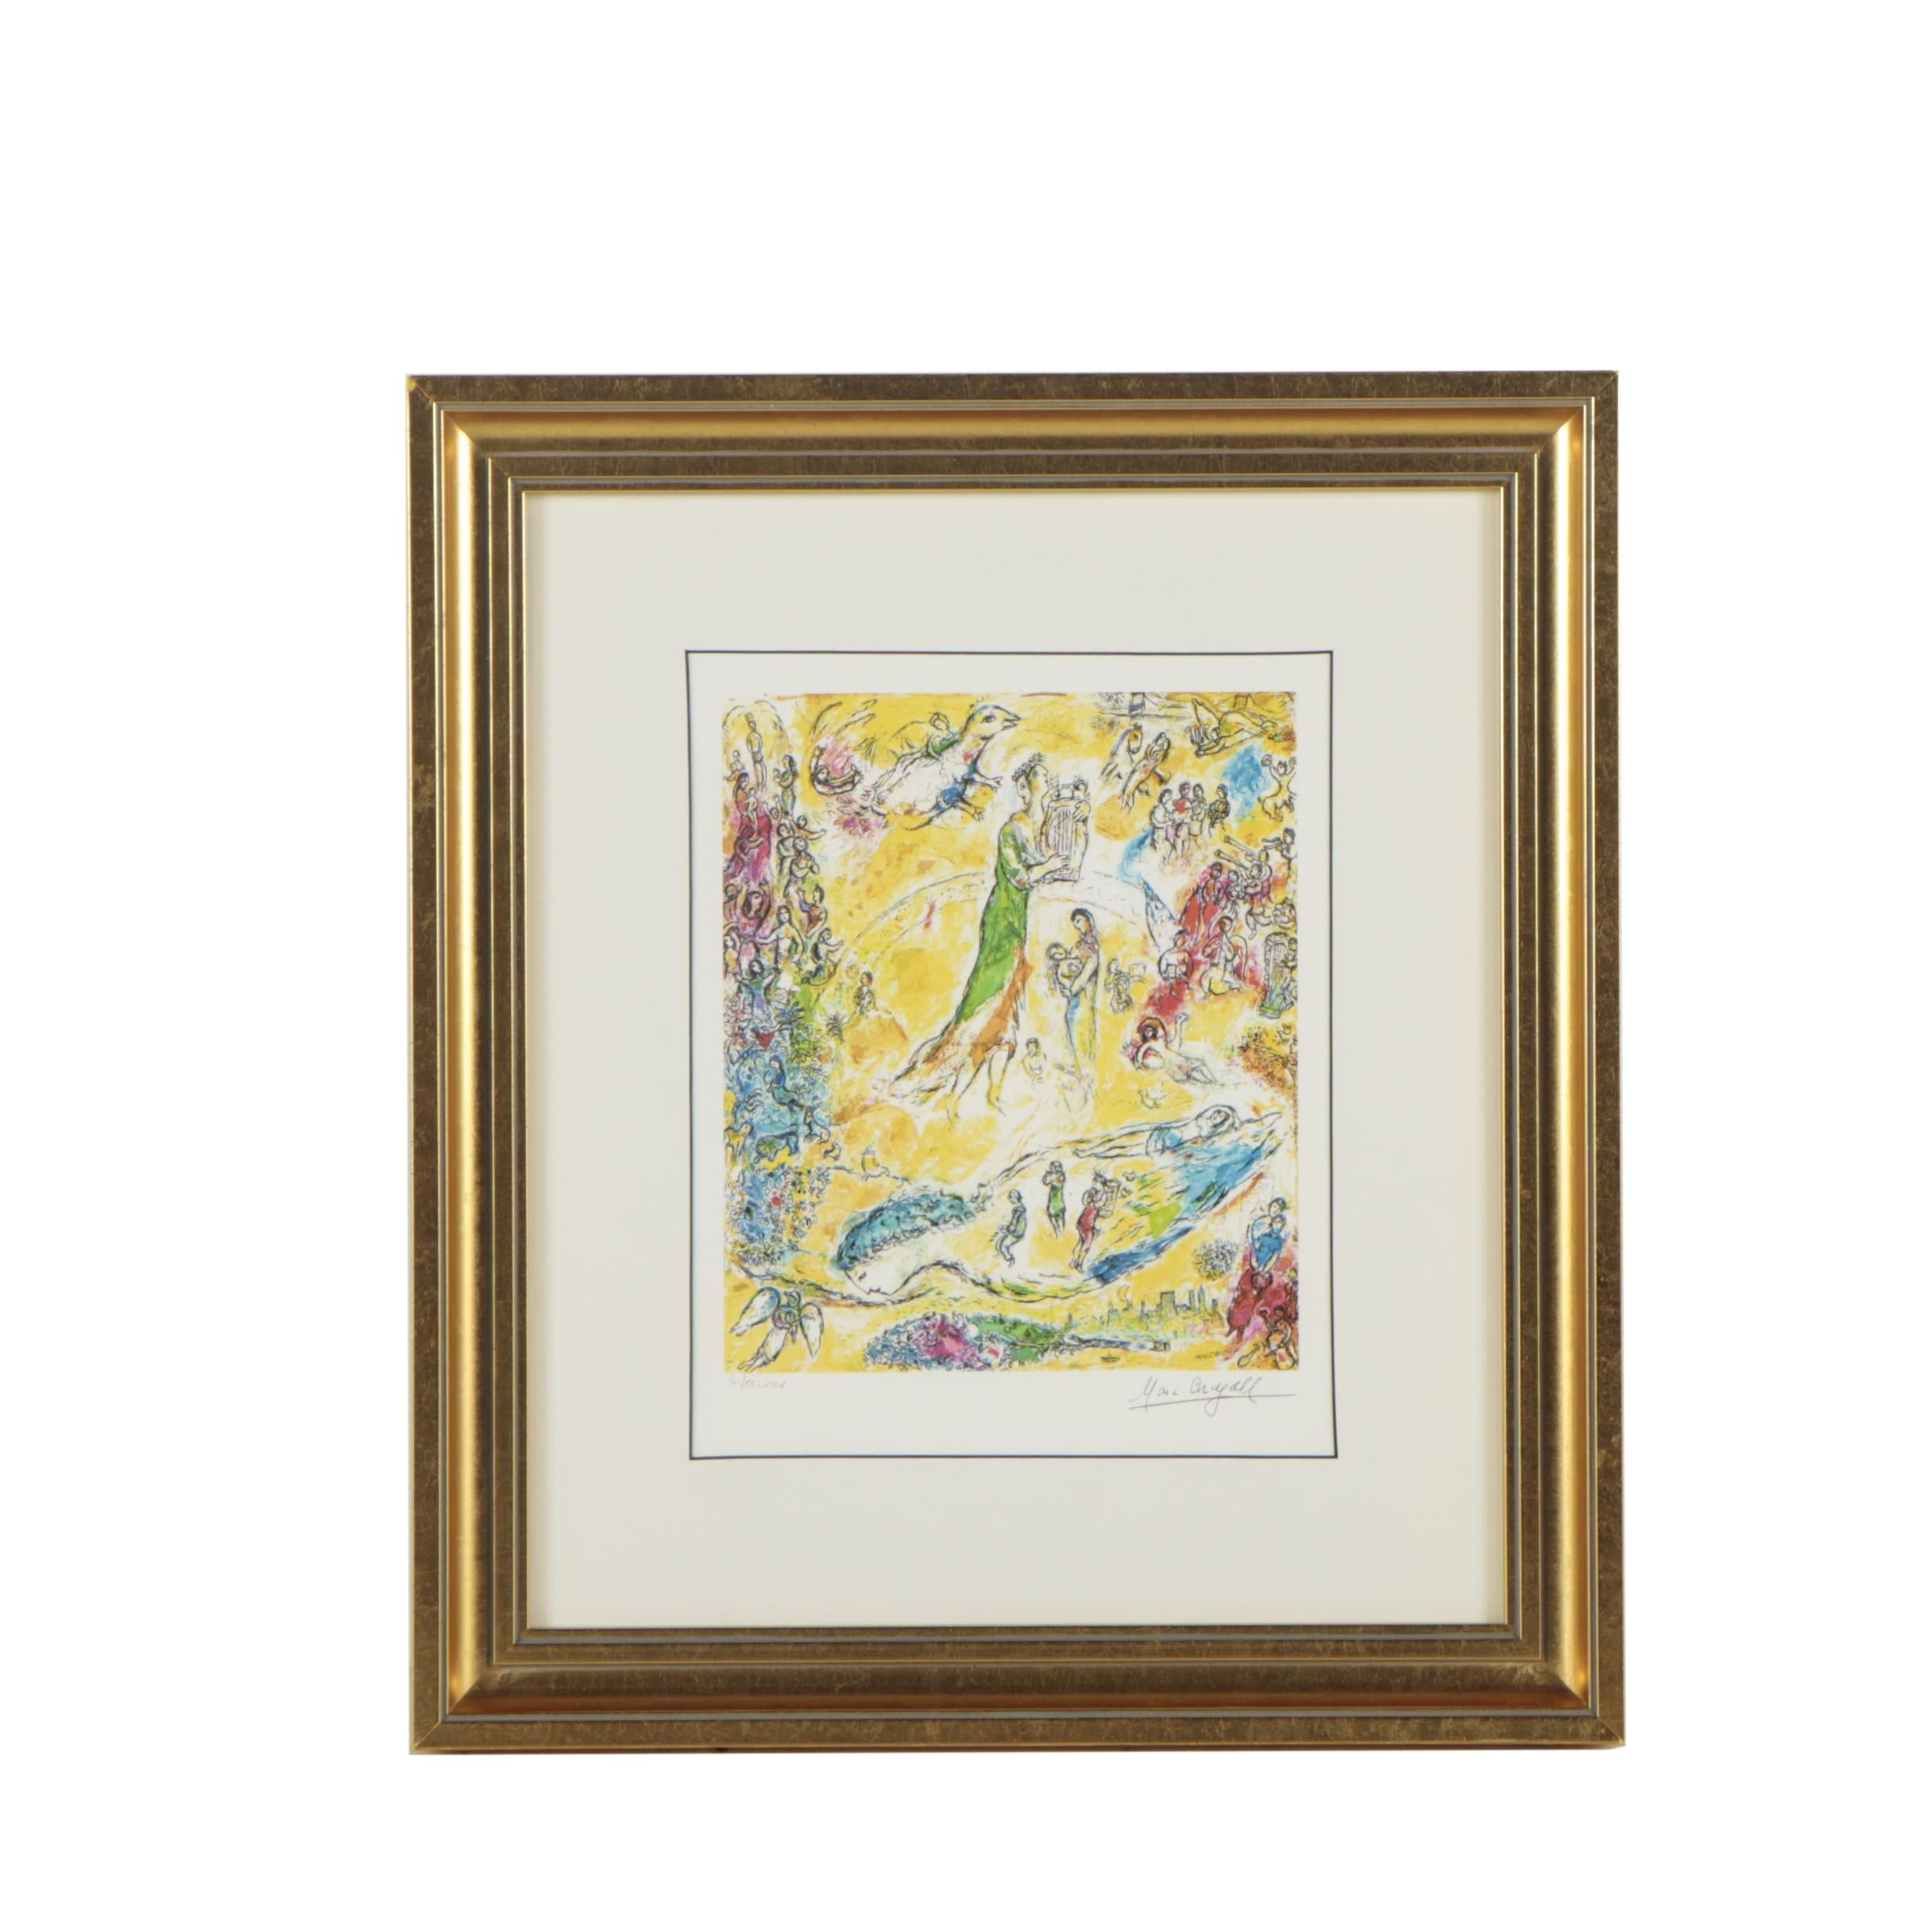 """Limited Edition Giclée after Marc Chagall's """"The Sources of Music"""""""